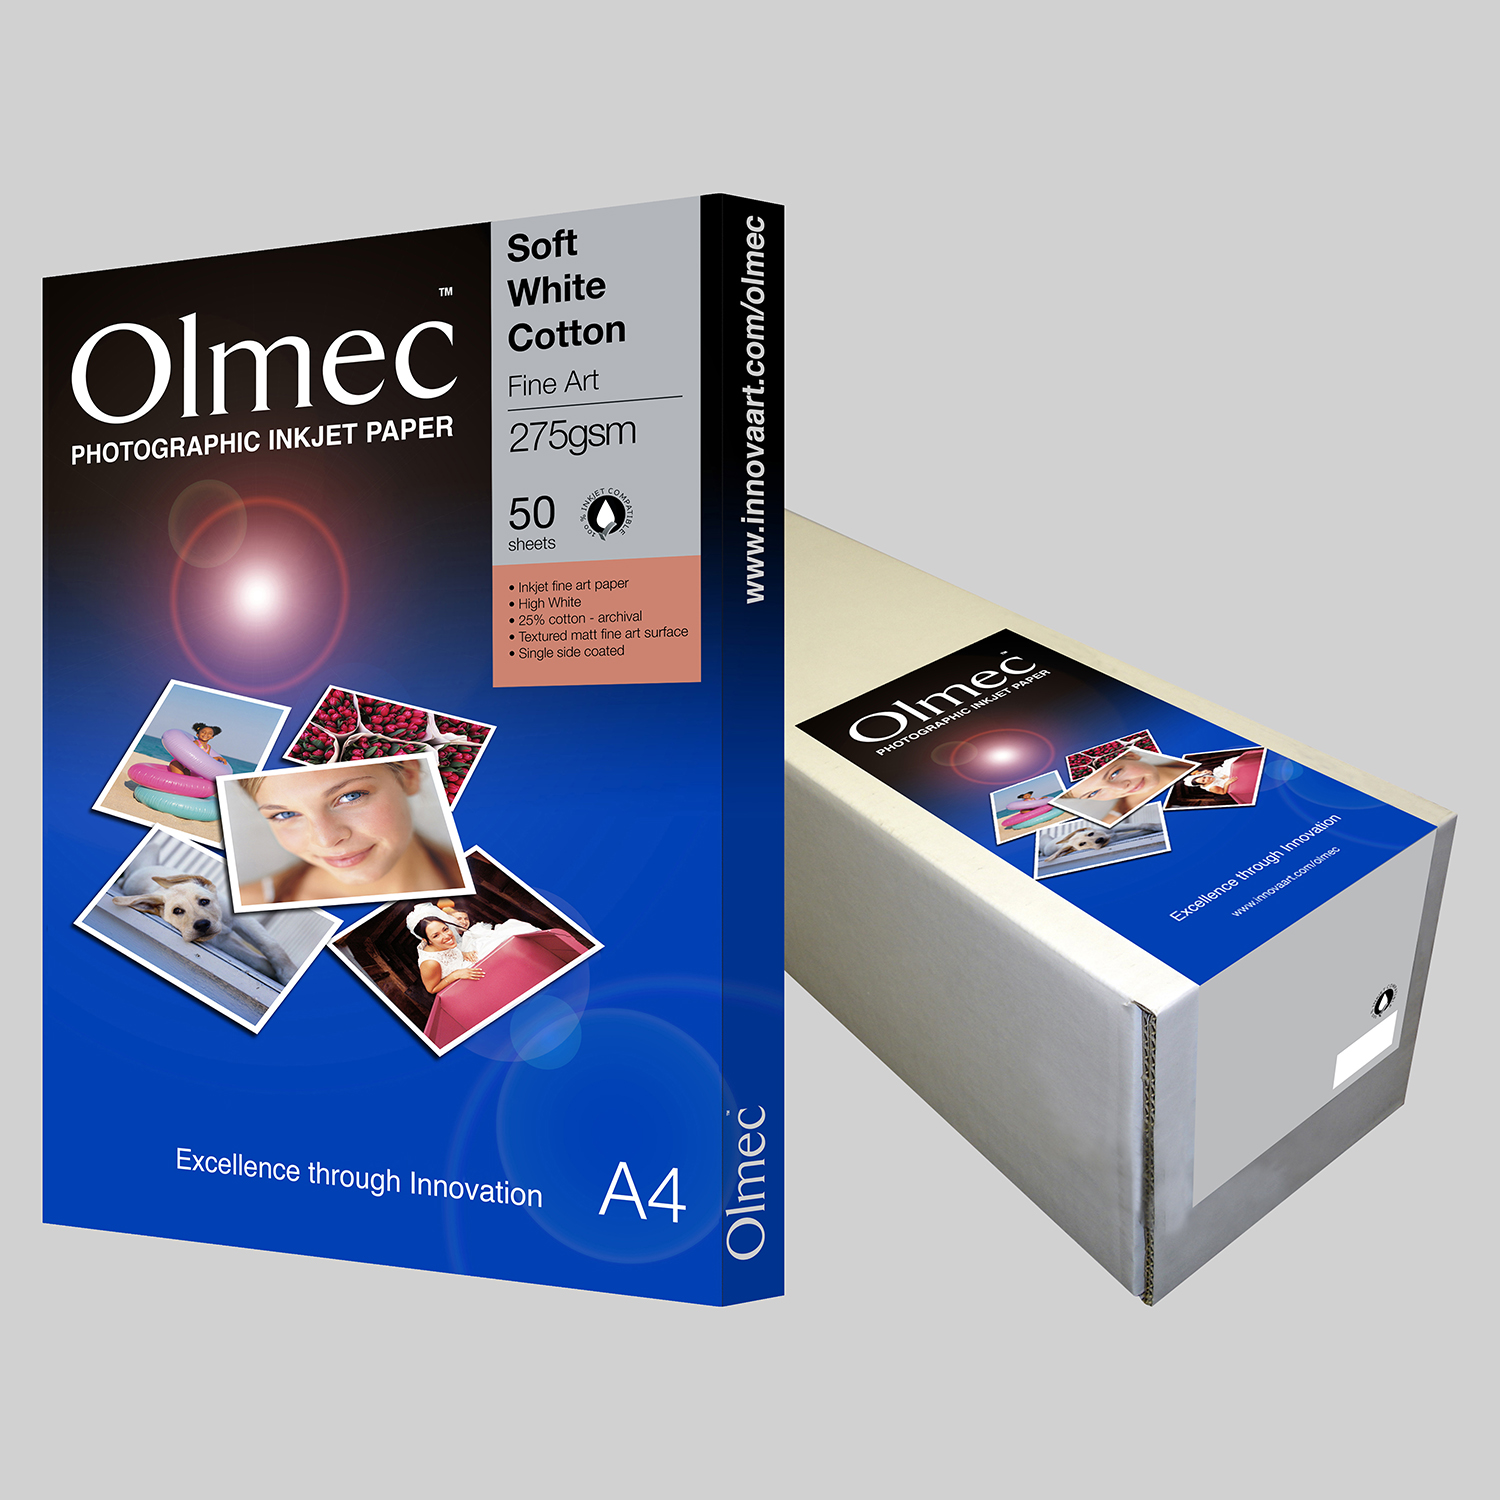 OLM 15 Rolls and Sheets